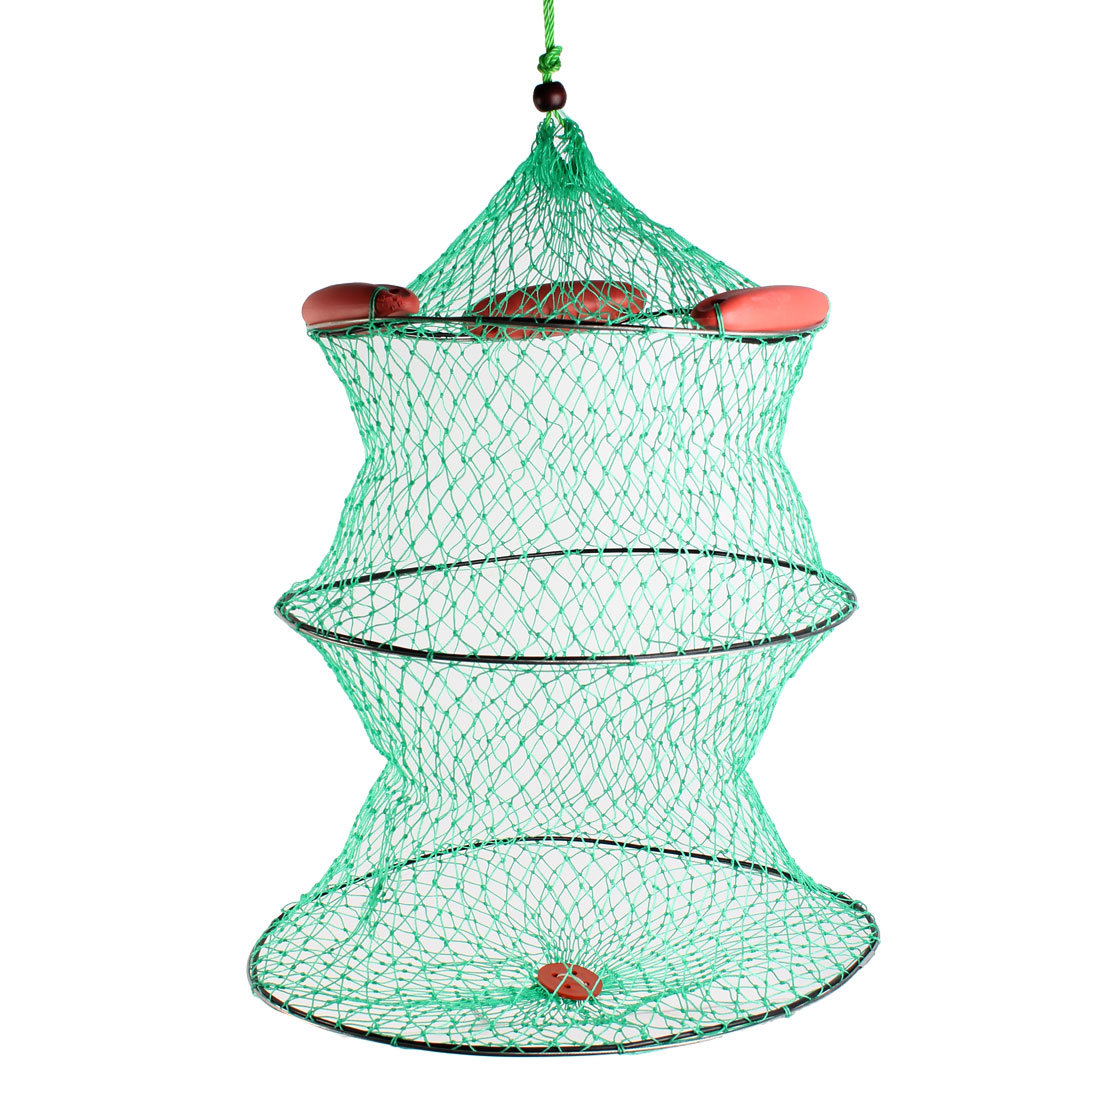 "27.5"" High 2 Sections Collapsible Fishing Keep Net Cage Green"